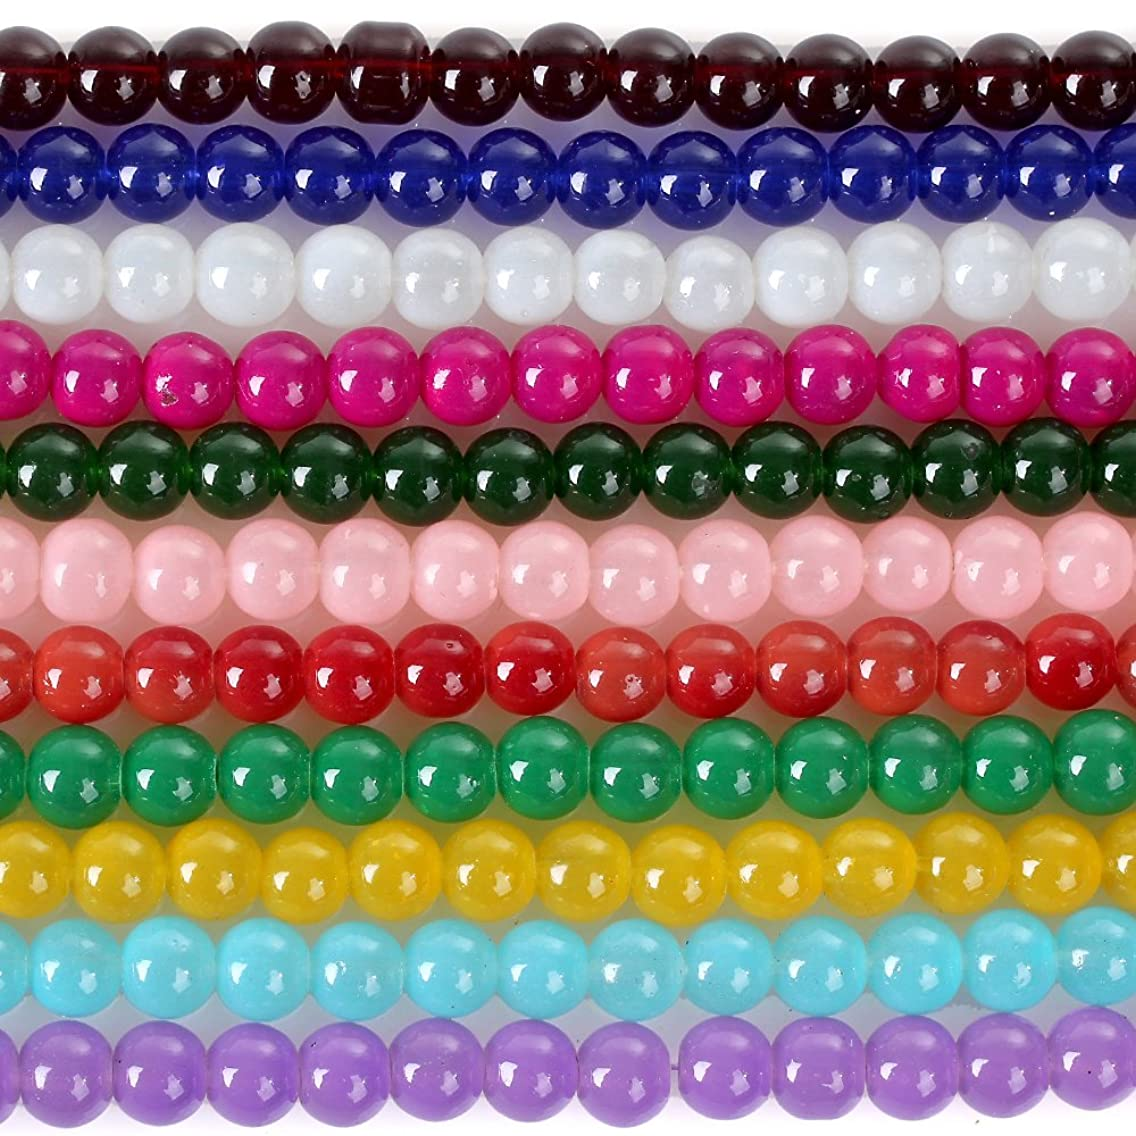 RUBYCA 2 Strings Mix Lot Assorted Jade Imitation Round Painted Coated Glass Beads Jewelry Making 8mm